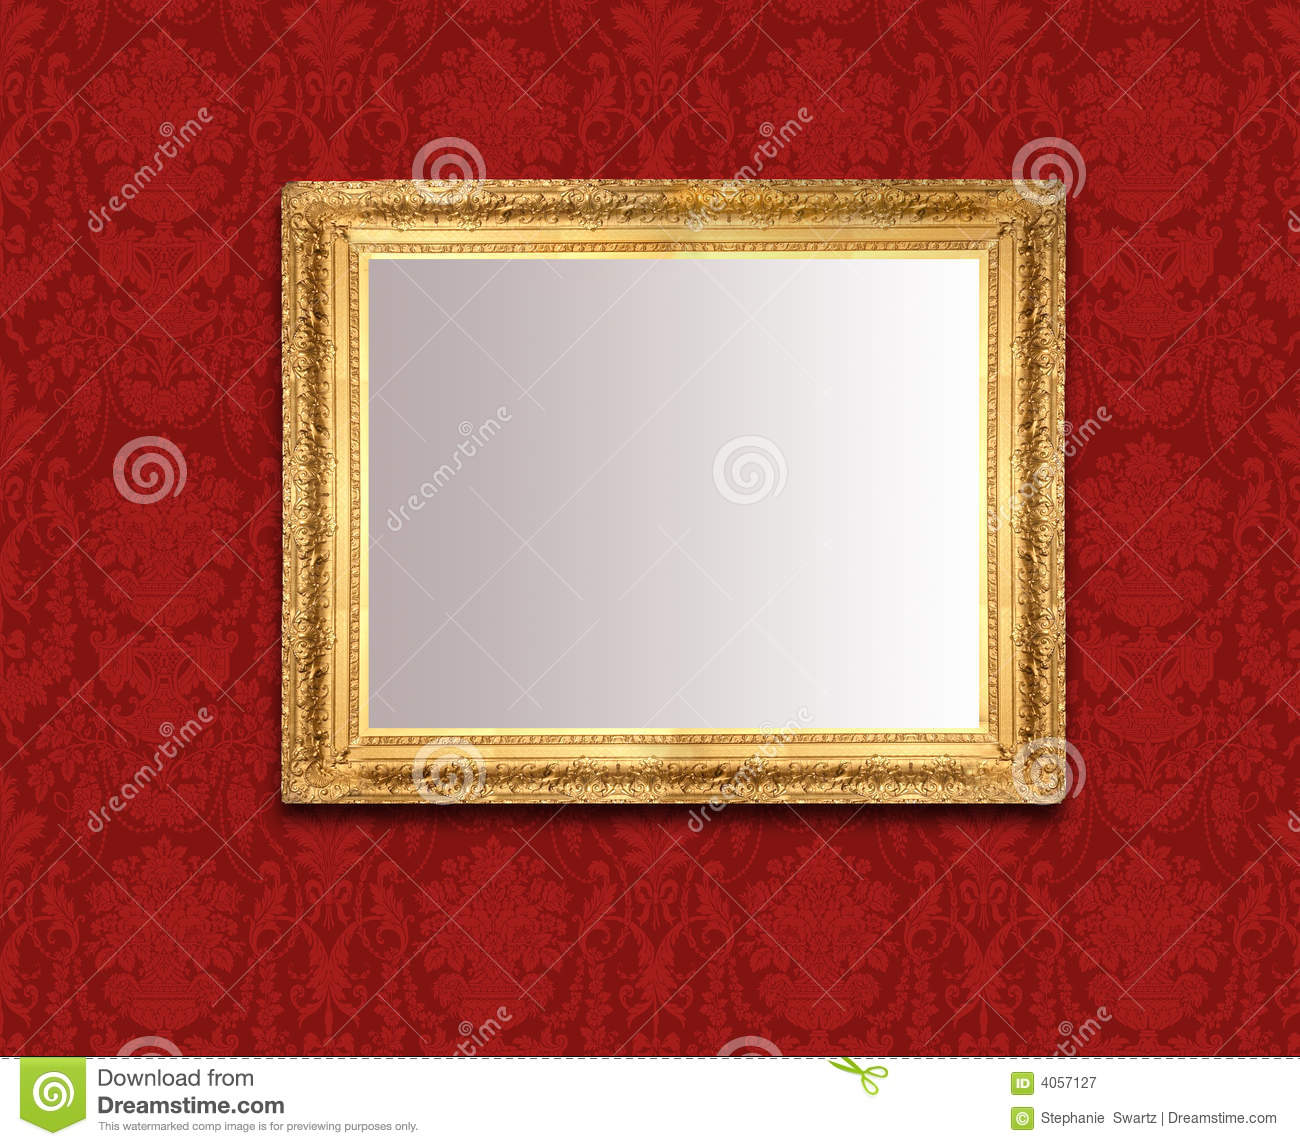 Red Wall Mirror mirror on red wall royalty free stock photography - image: 4057127